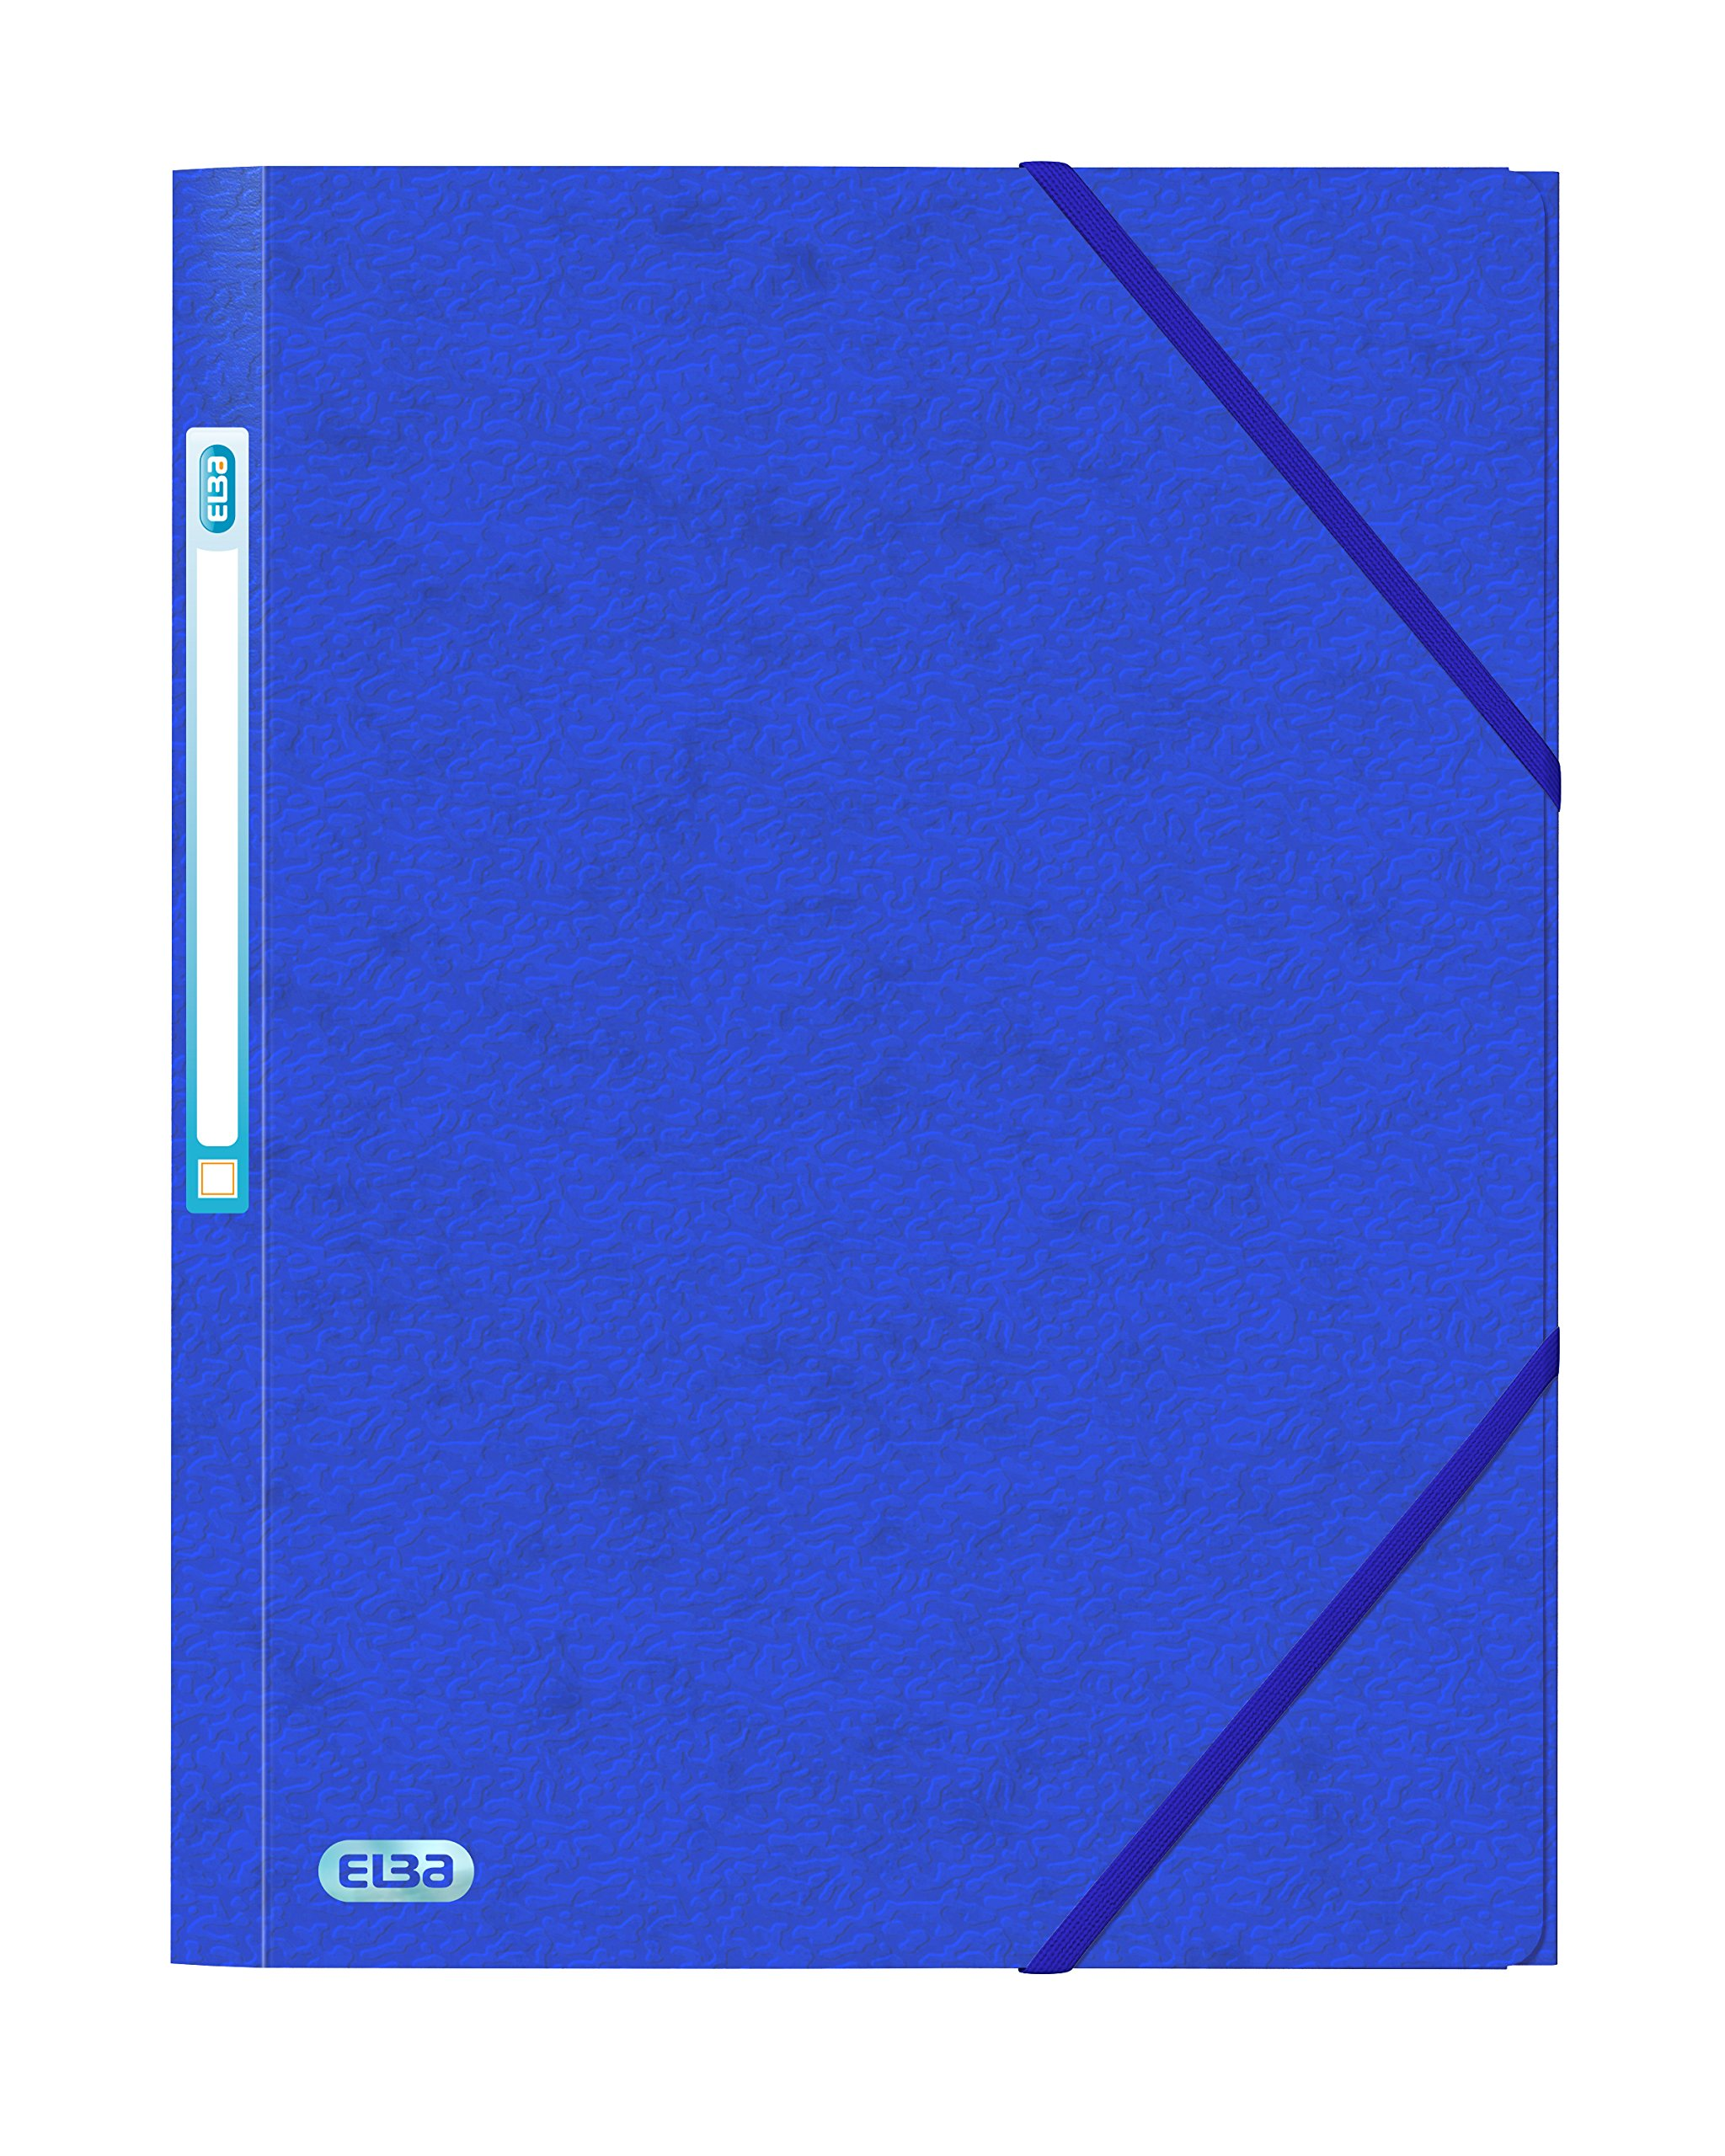 Elba Folder Elasticated 3-Flap 500gsm for 300 Sheets A4-Foolscap Blue Ref 43198031 [Pack of 10]